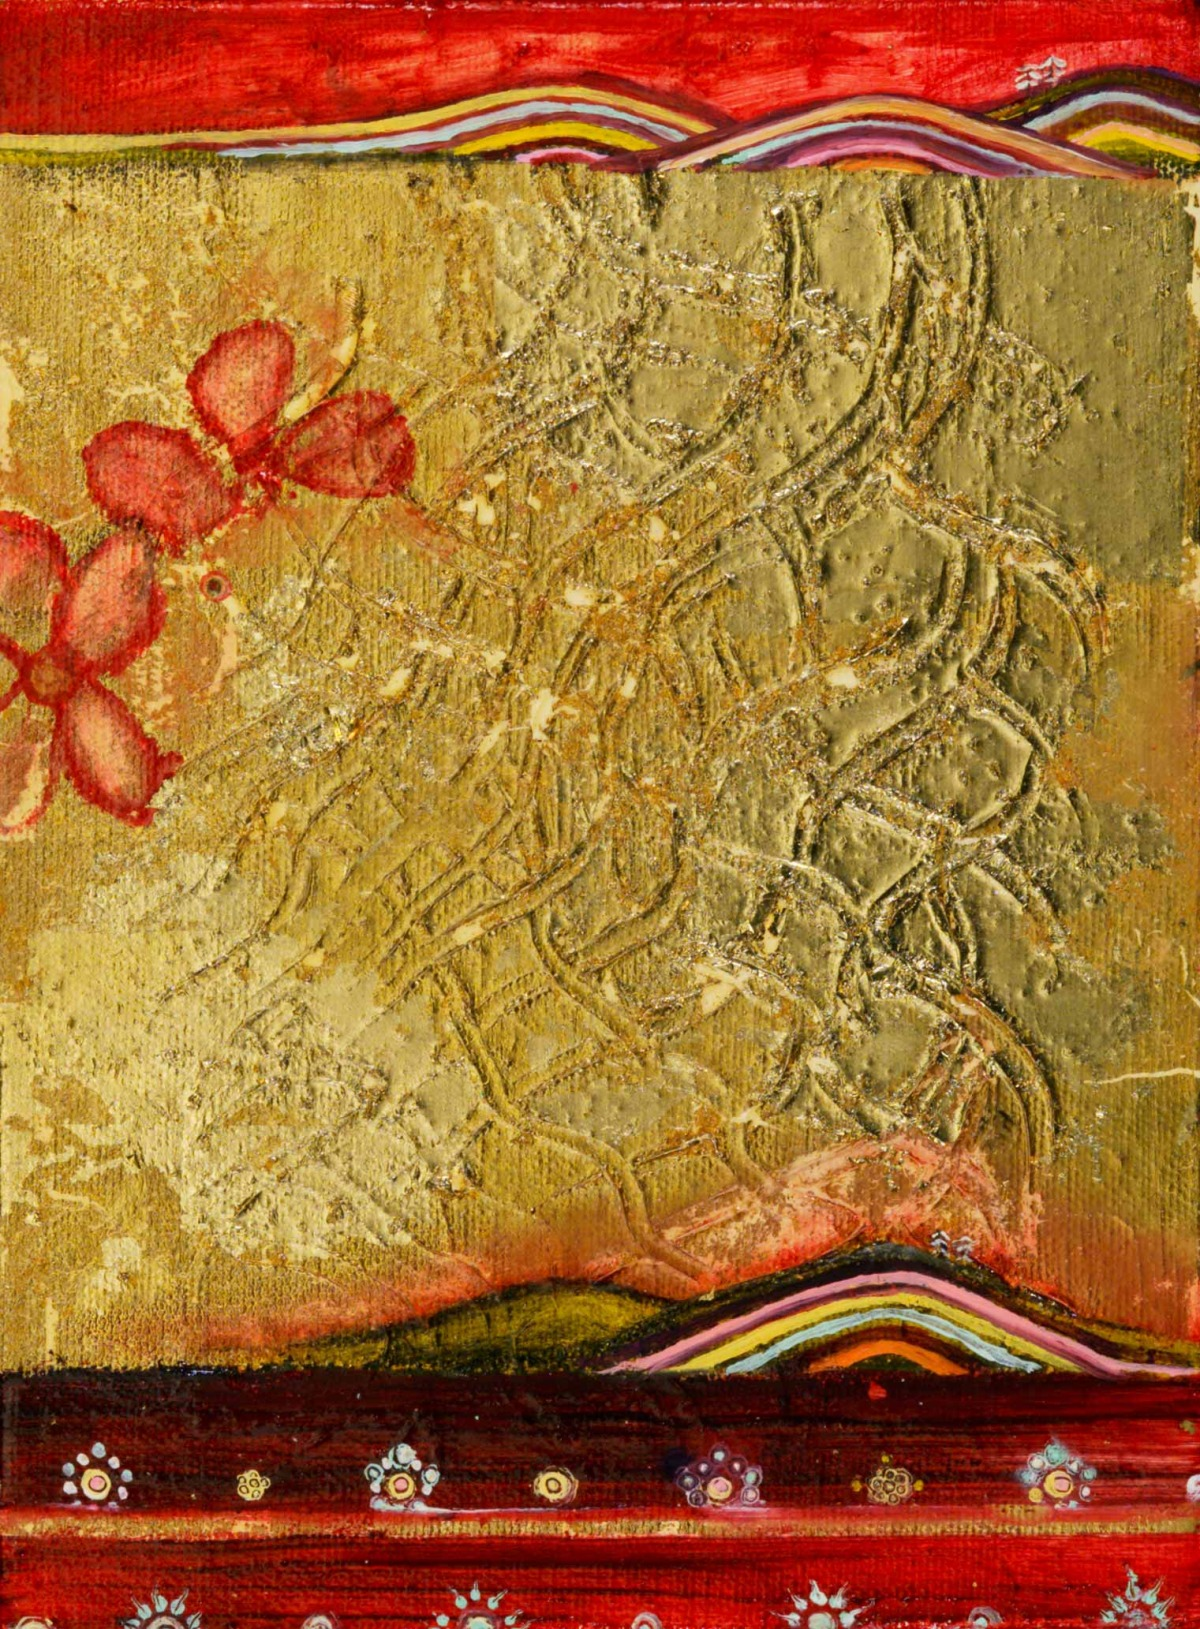 """Double Landscape (with Textured Gold) Oil, graphite, gold leaf on canvas 6"""" x 8"""" / SOLD"""